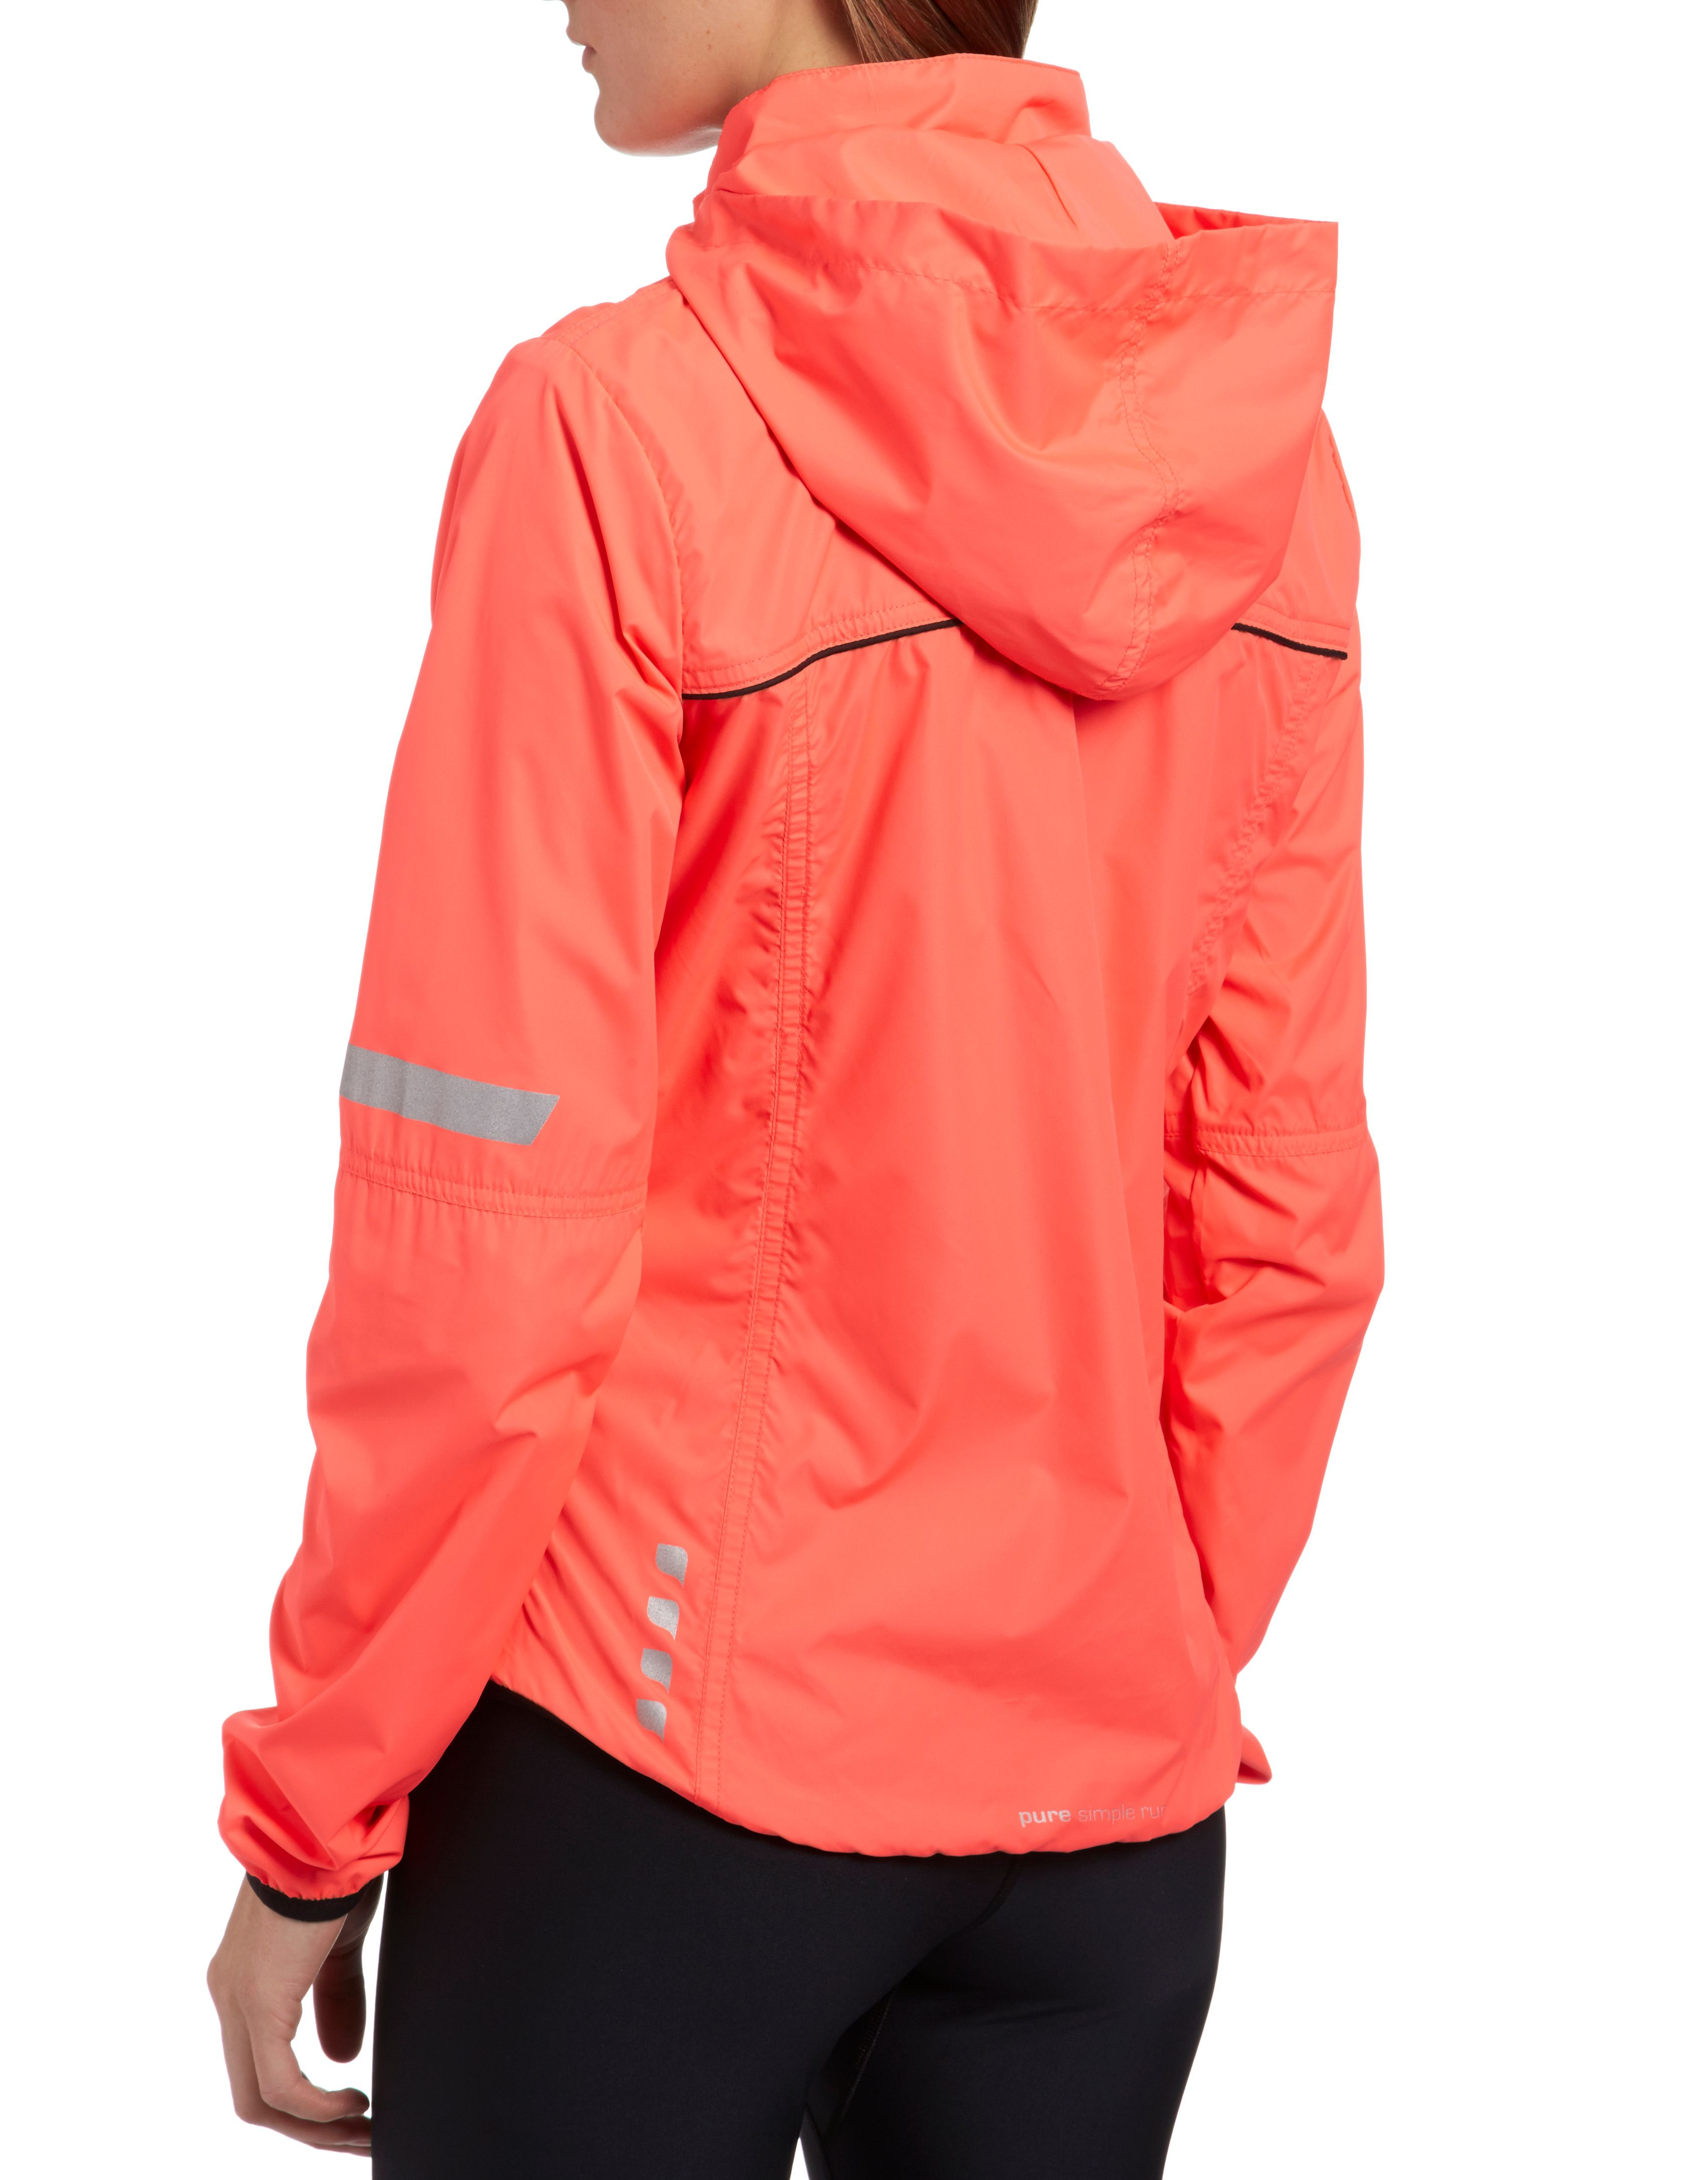 Pure Simple Sport Response Running Jacket